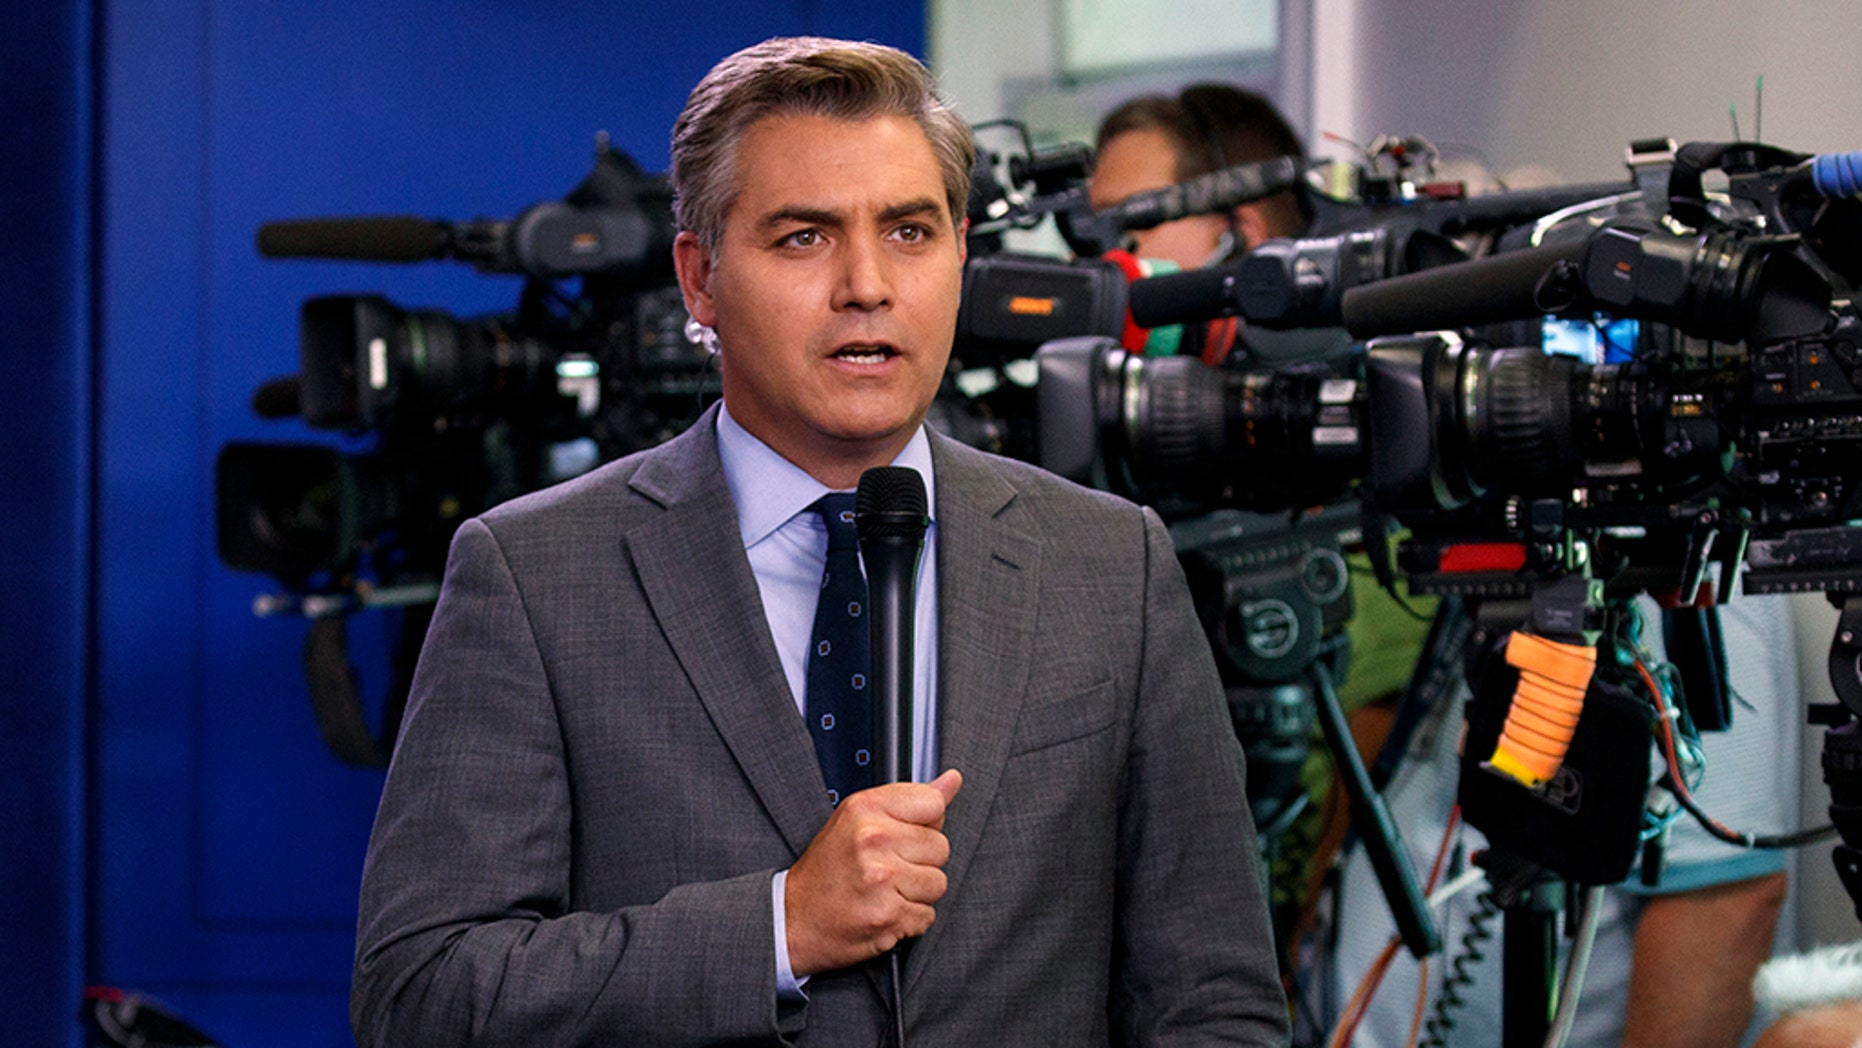 CNN's Jim Acosta criticized a Daily Caller reporter's question following a Rose Garden press conference. (AP Photo/Evan Vucci)